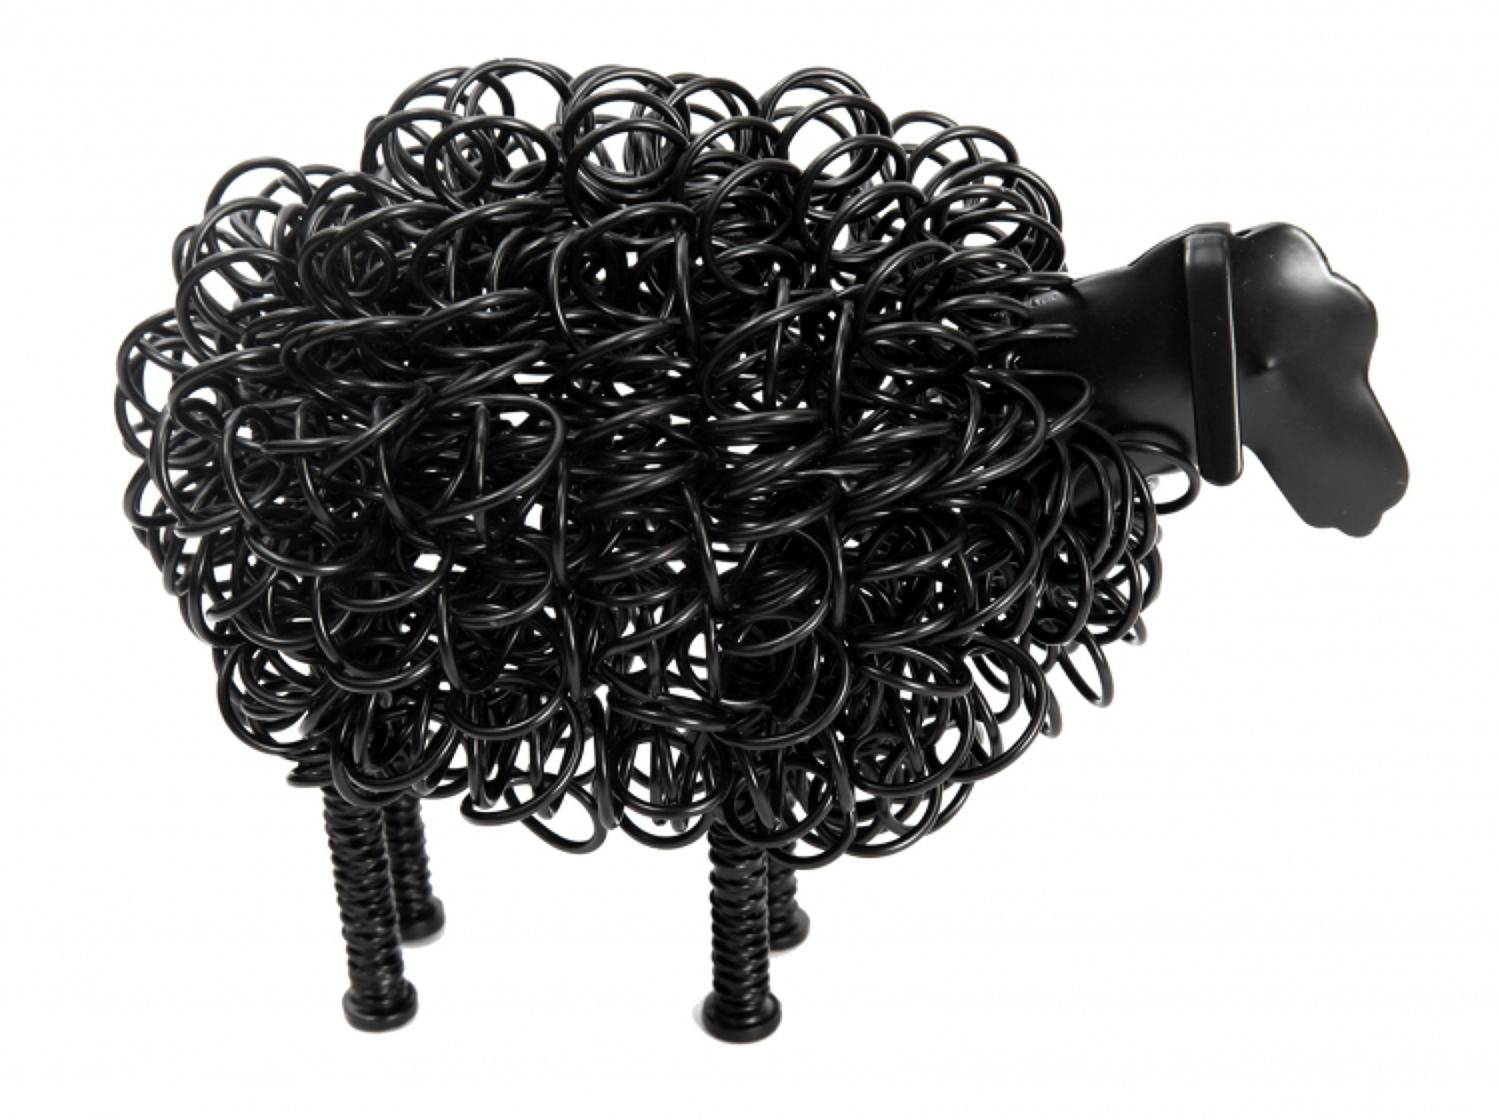 Black wiggle sheep, also available in Silver